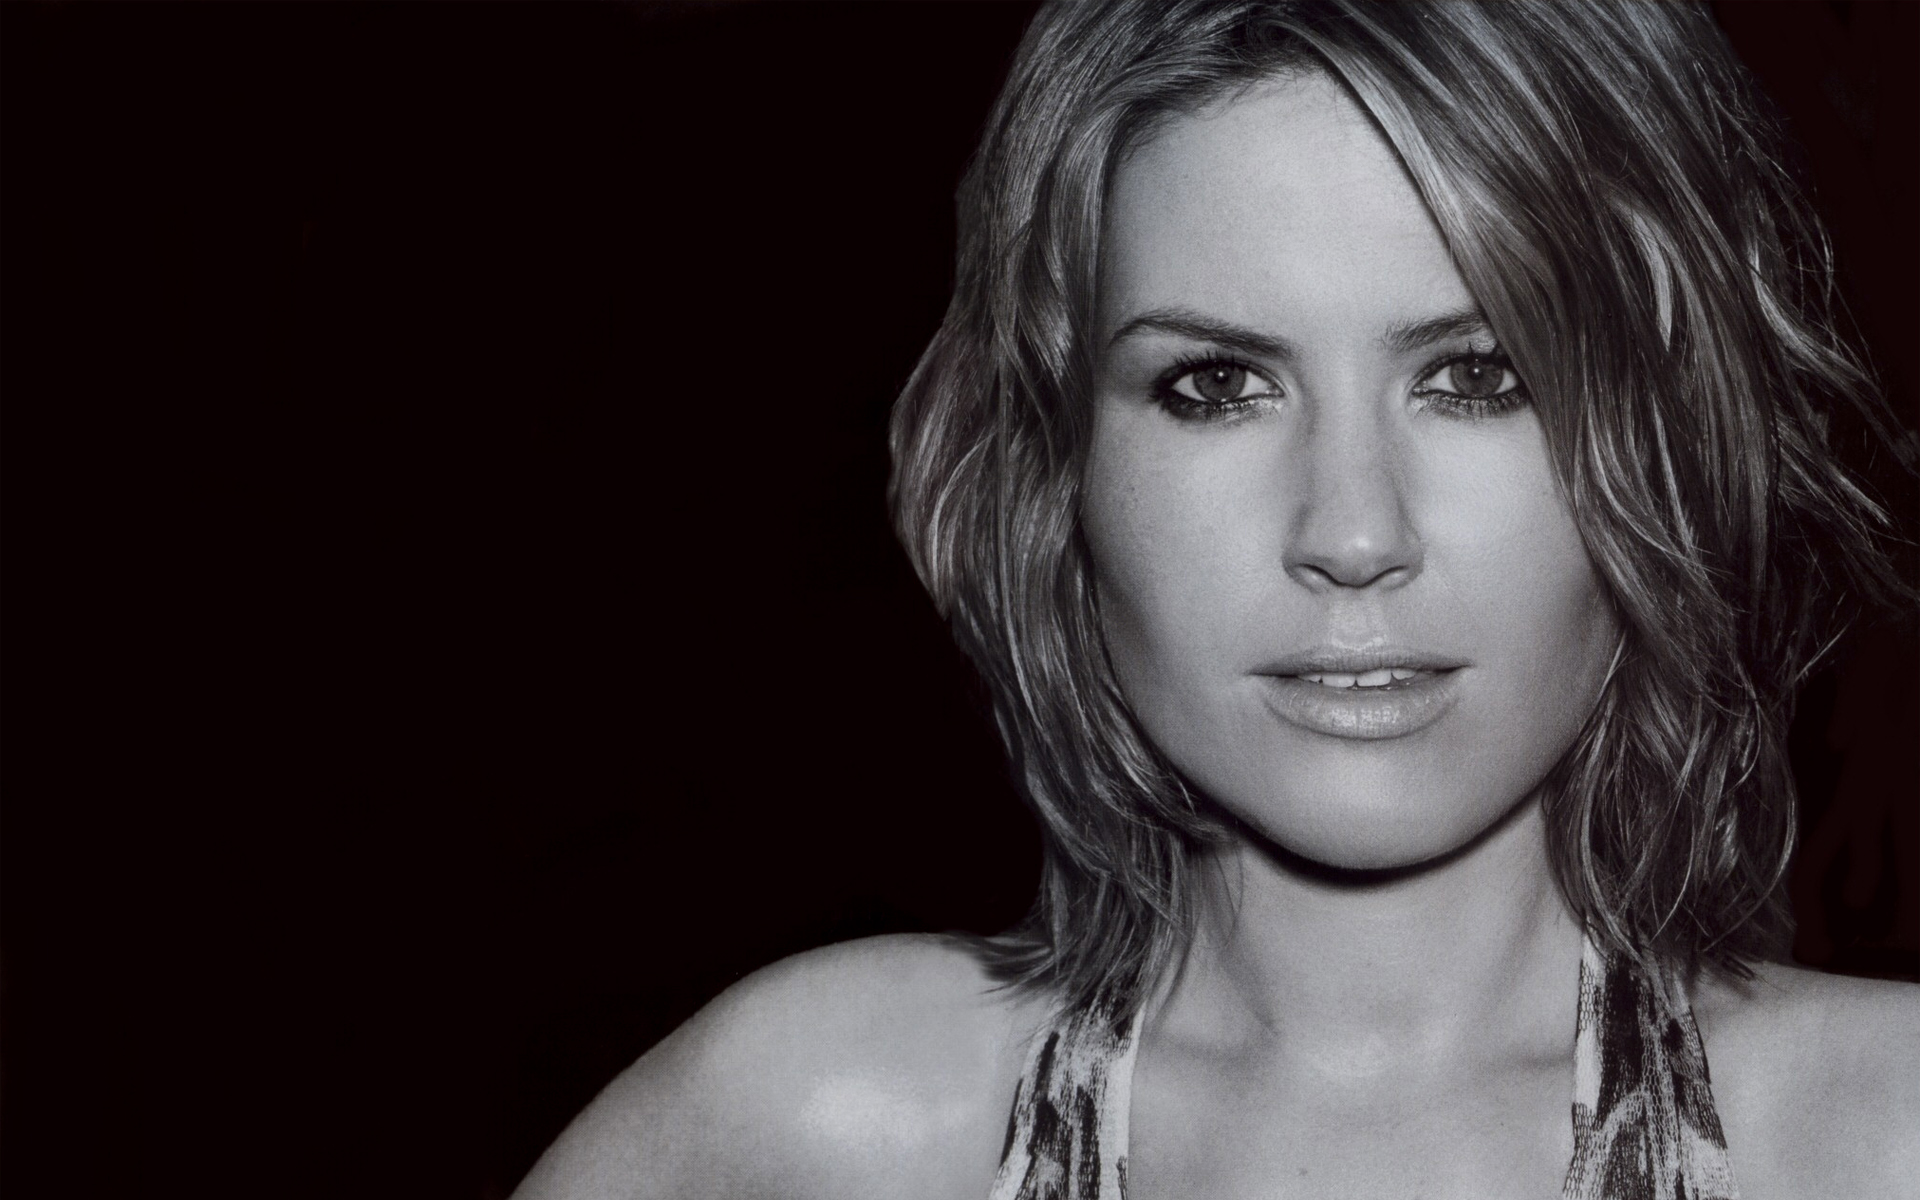 Single Review: Dido - End of Night | Redbrick | University of Birmingham